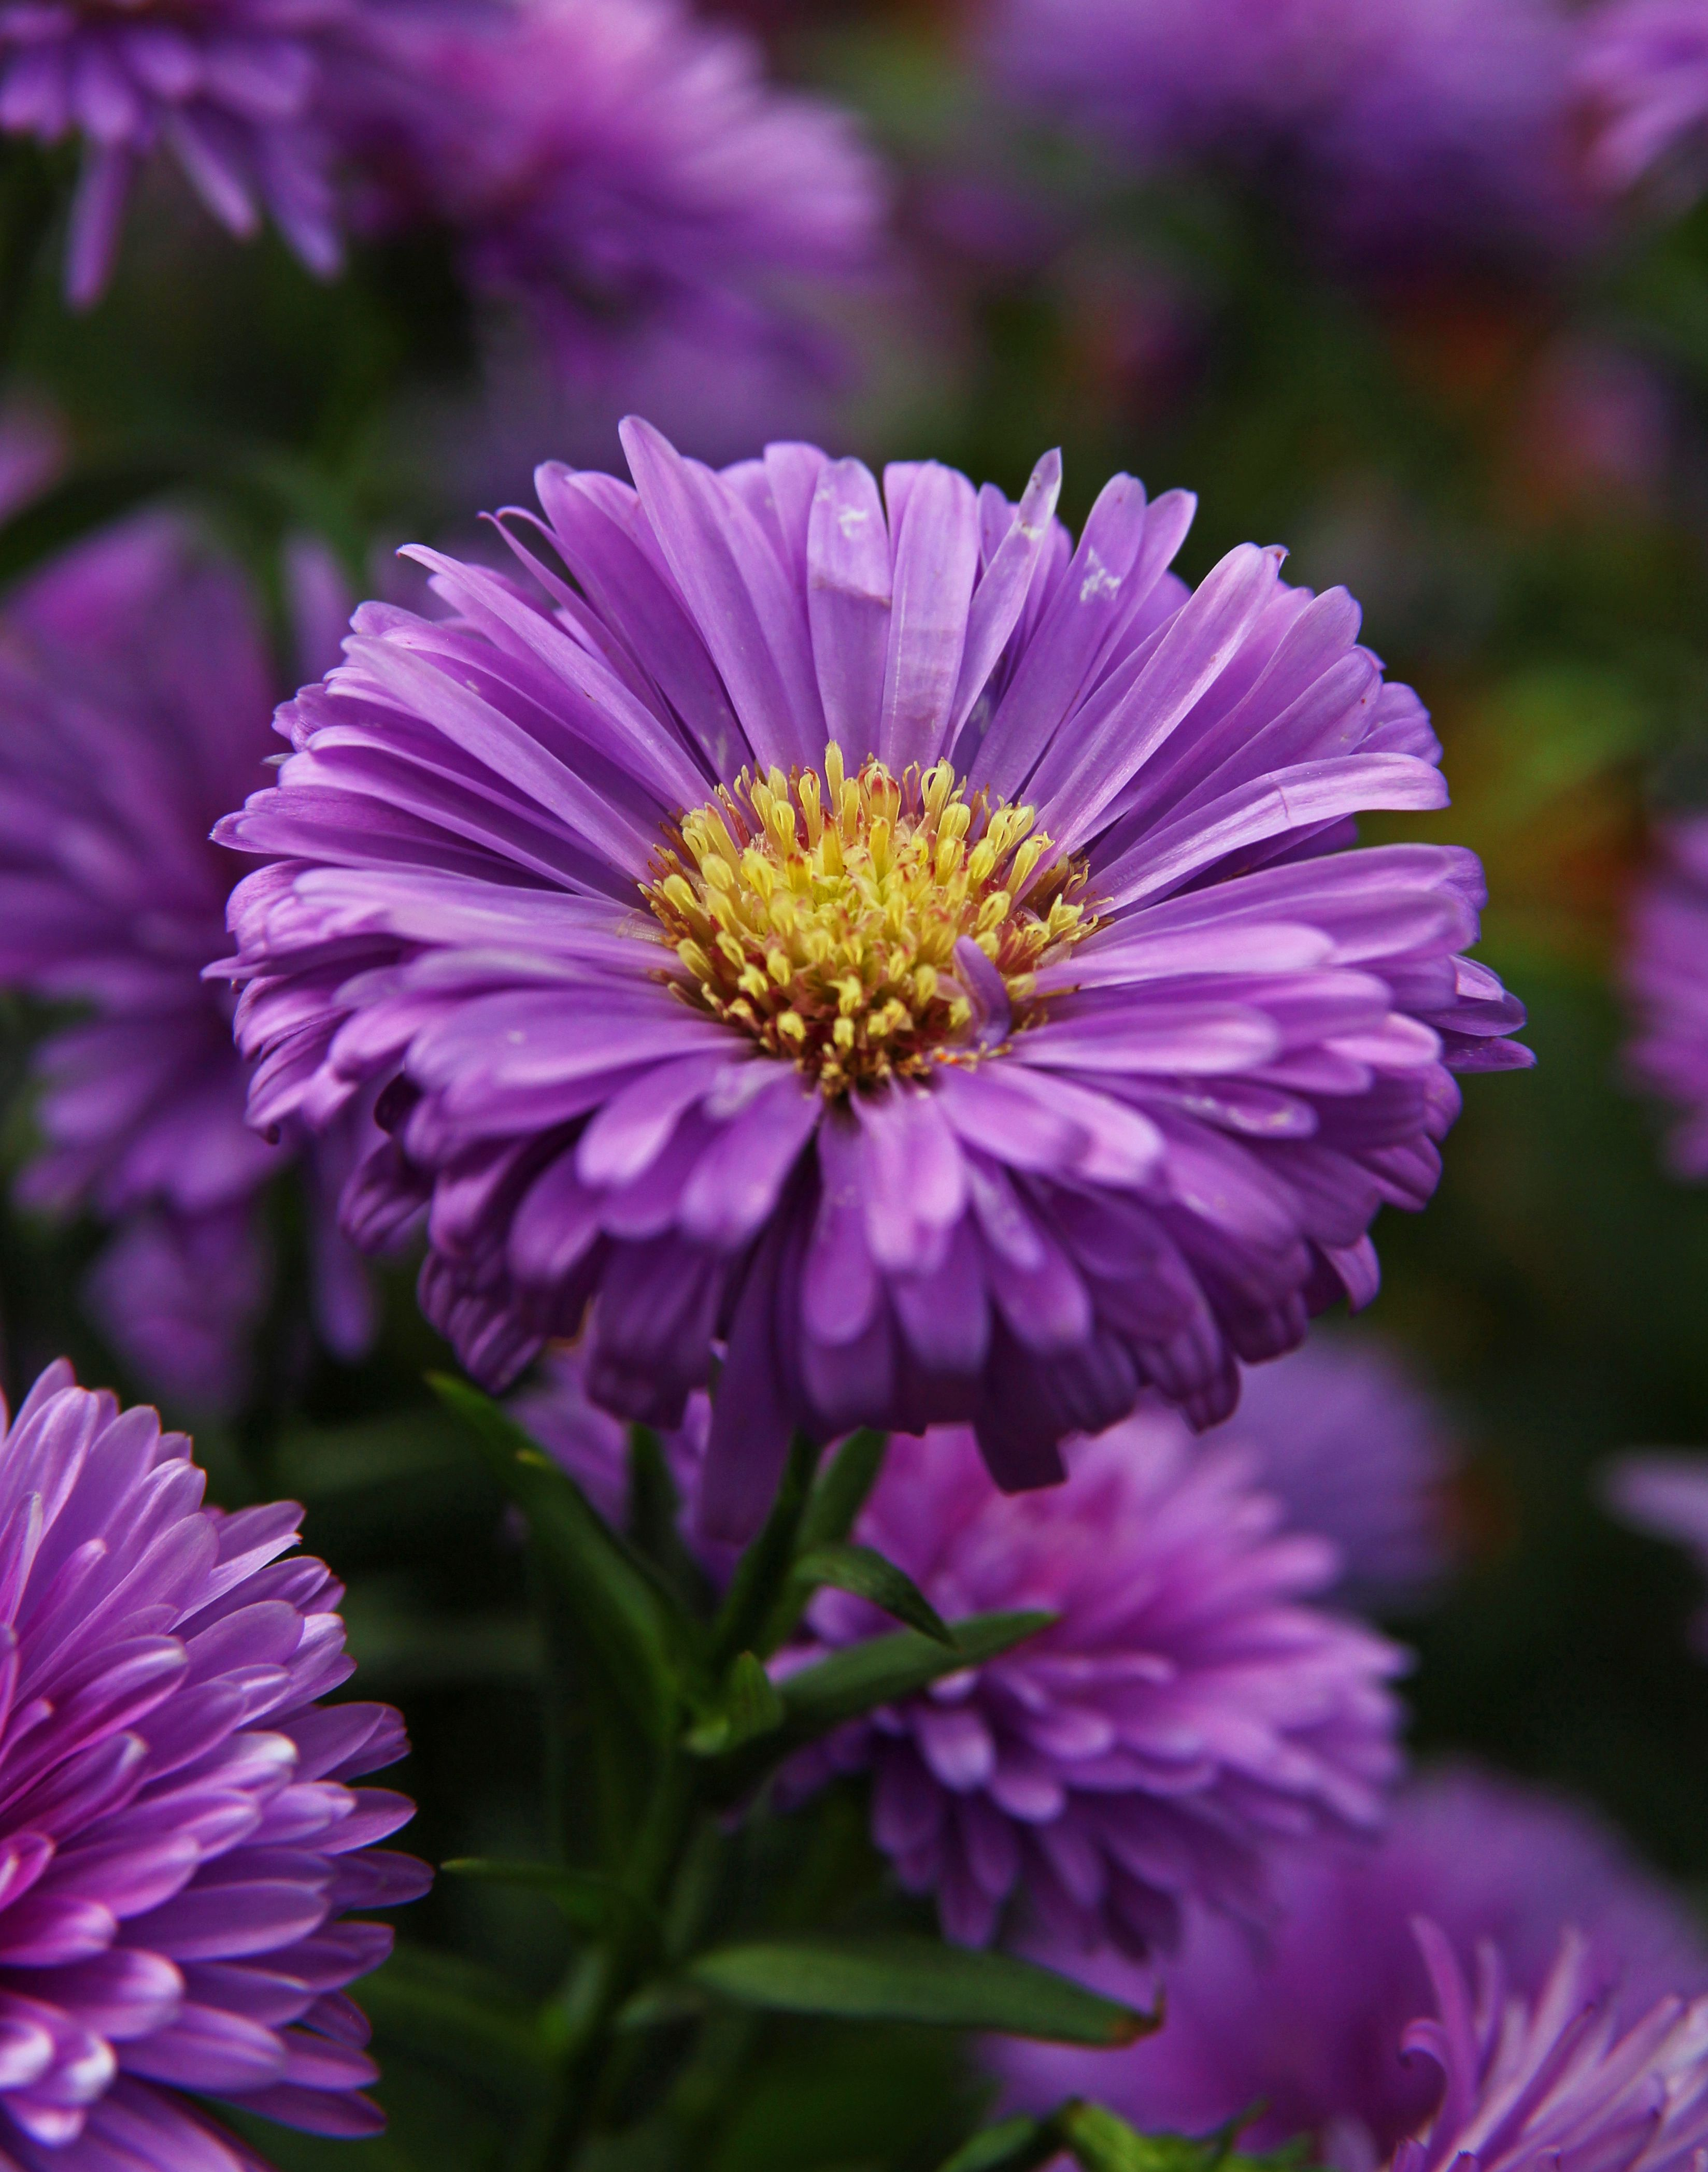 September's birth flower is the Aster. Asters have a